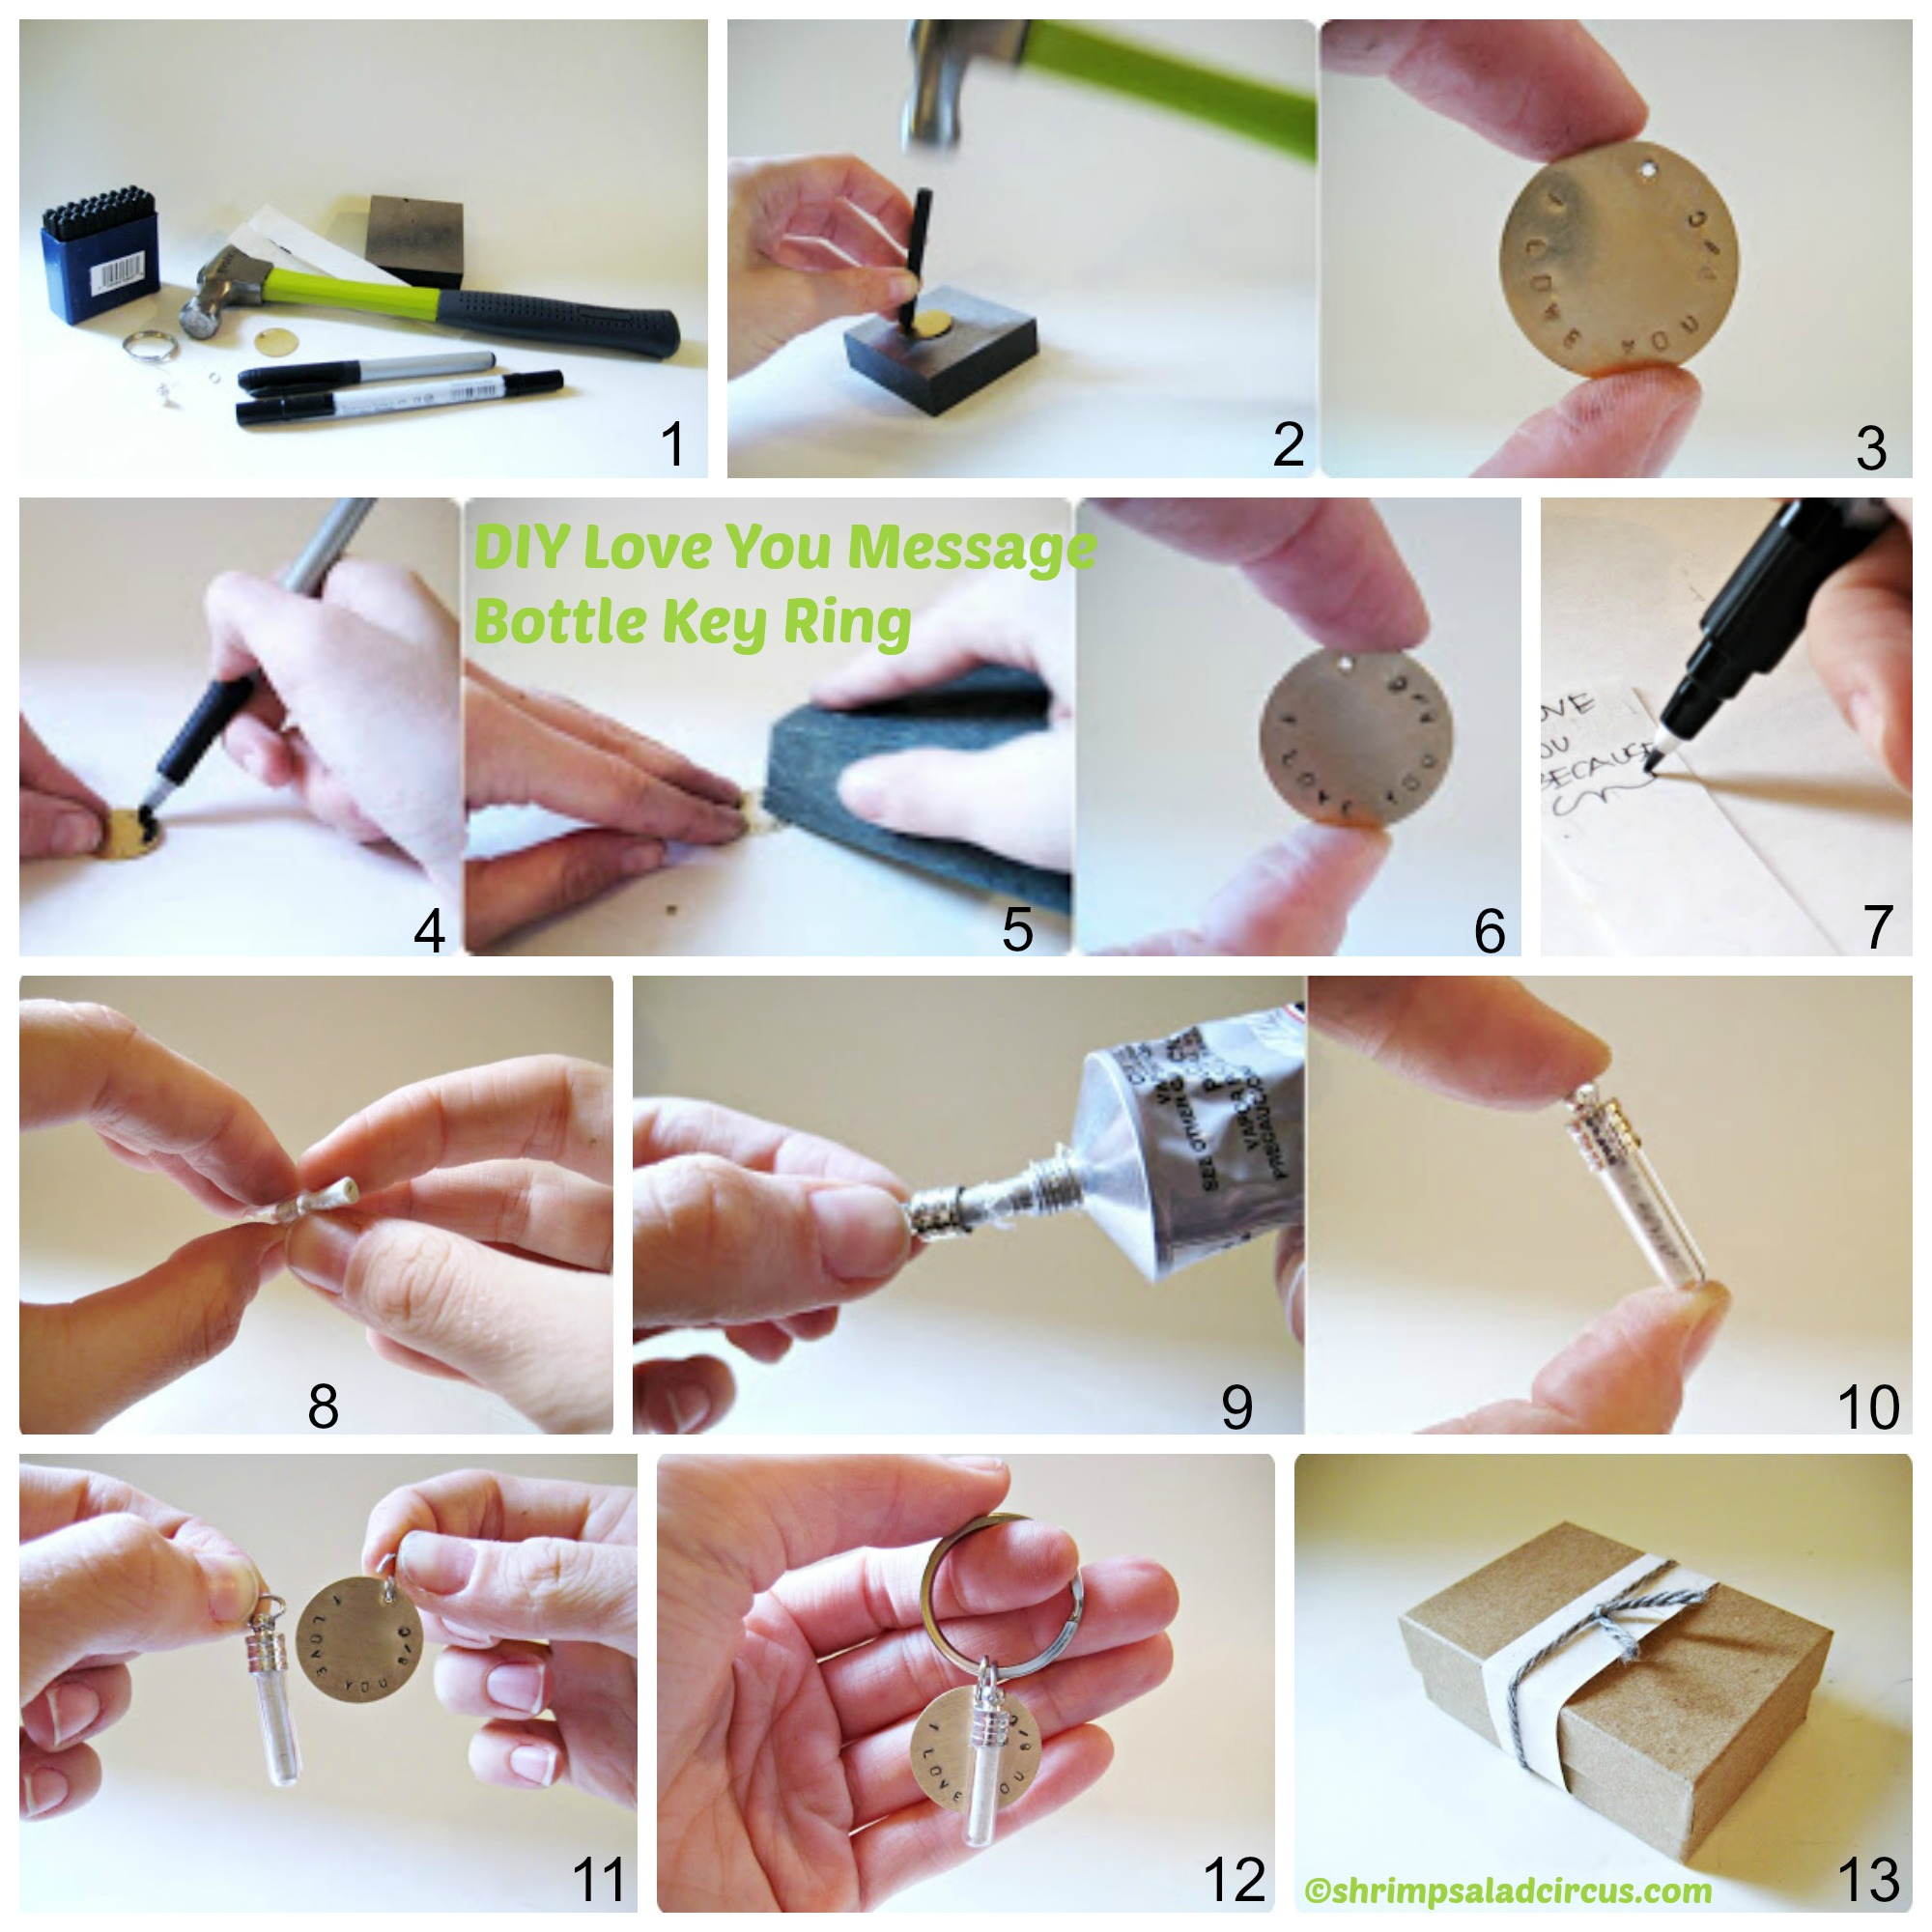 How to make a Love You Message Bottle Key Ring